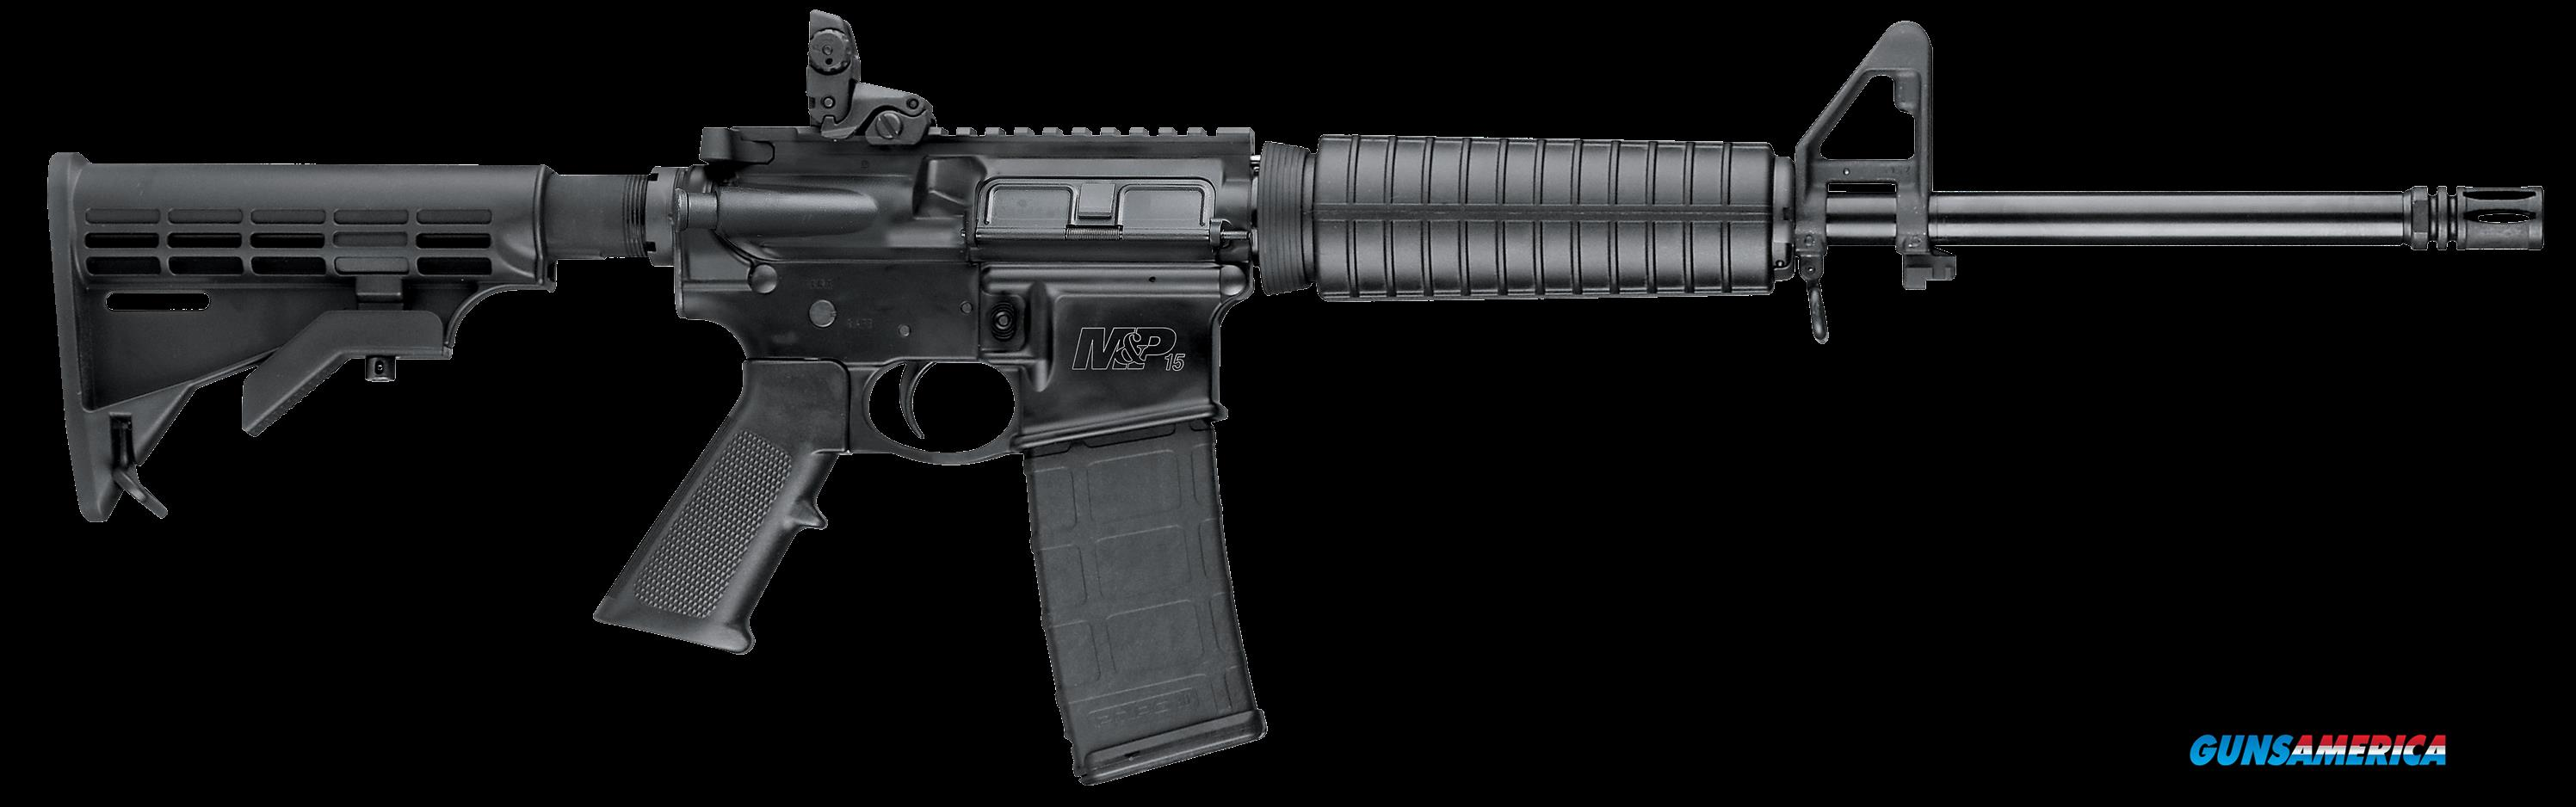 "Smith & Wesson 10202 M&P 15 Sport II Semi-Automatic 223 Rem/5.56 NATO 16"" 30+1 6-Position Black Stk  Guns > Rifles > S Misc Rifles"